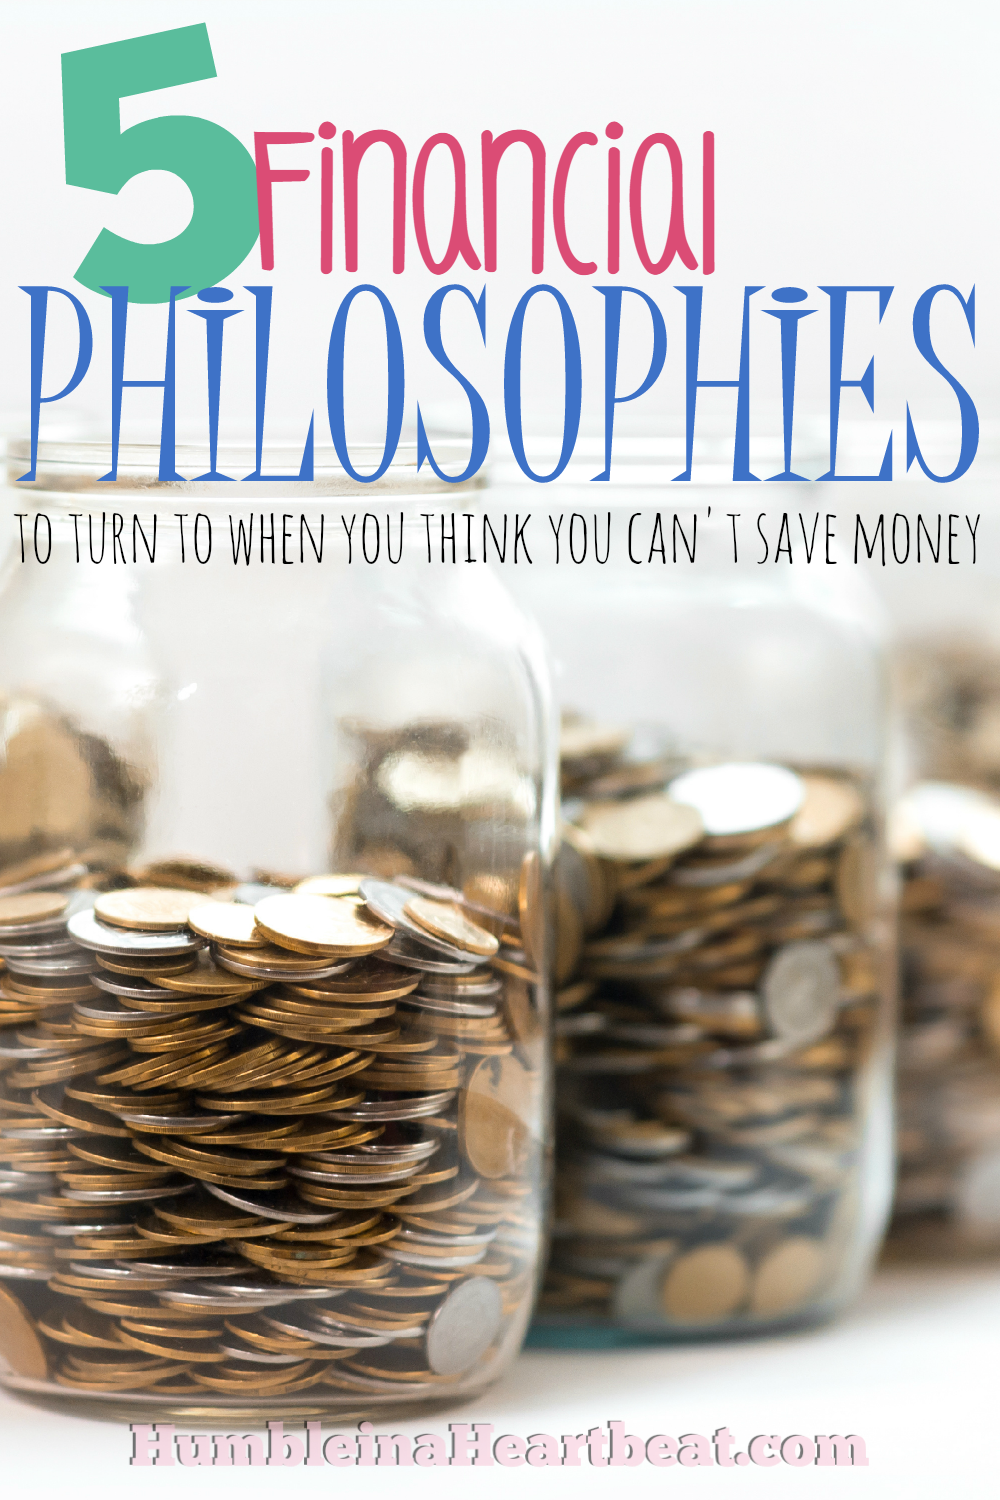 Saving money comes easier to some people, but probably because they have adopted a few of these financial philosophies to help them save more. Are you willing to change so you can put more away?